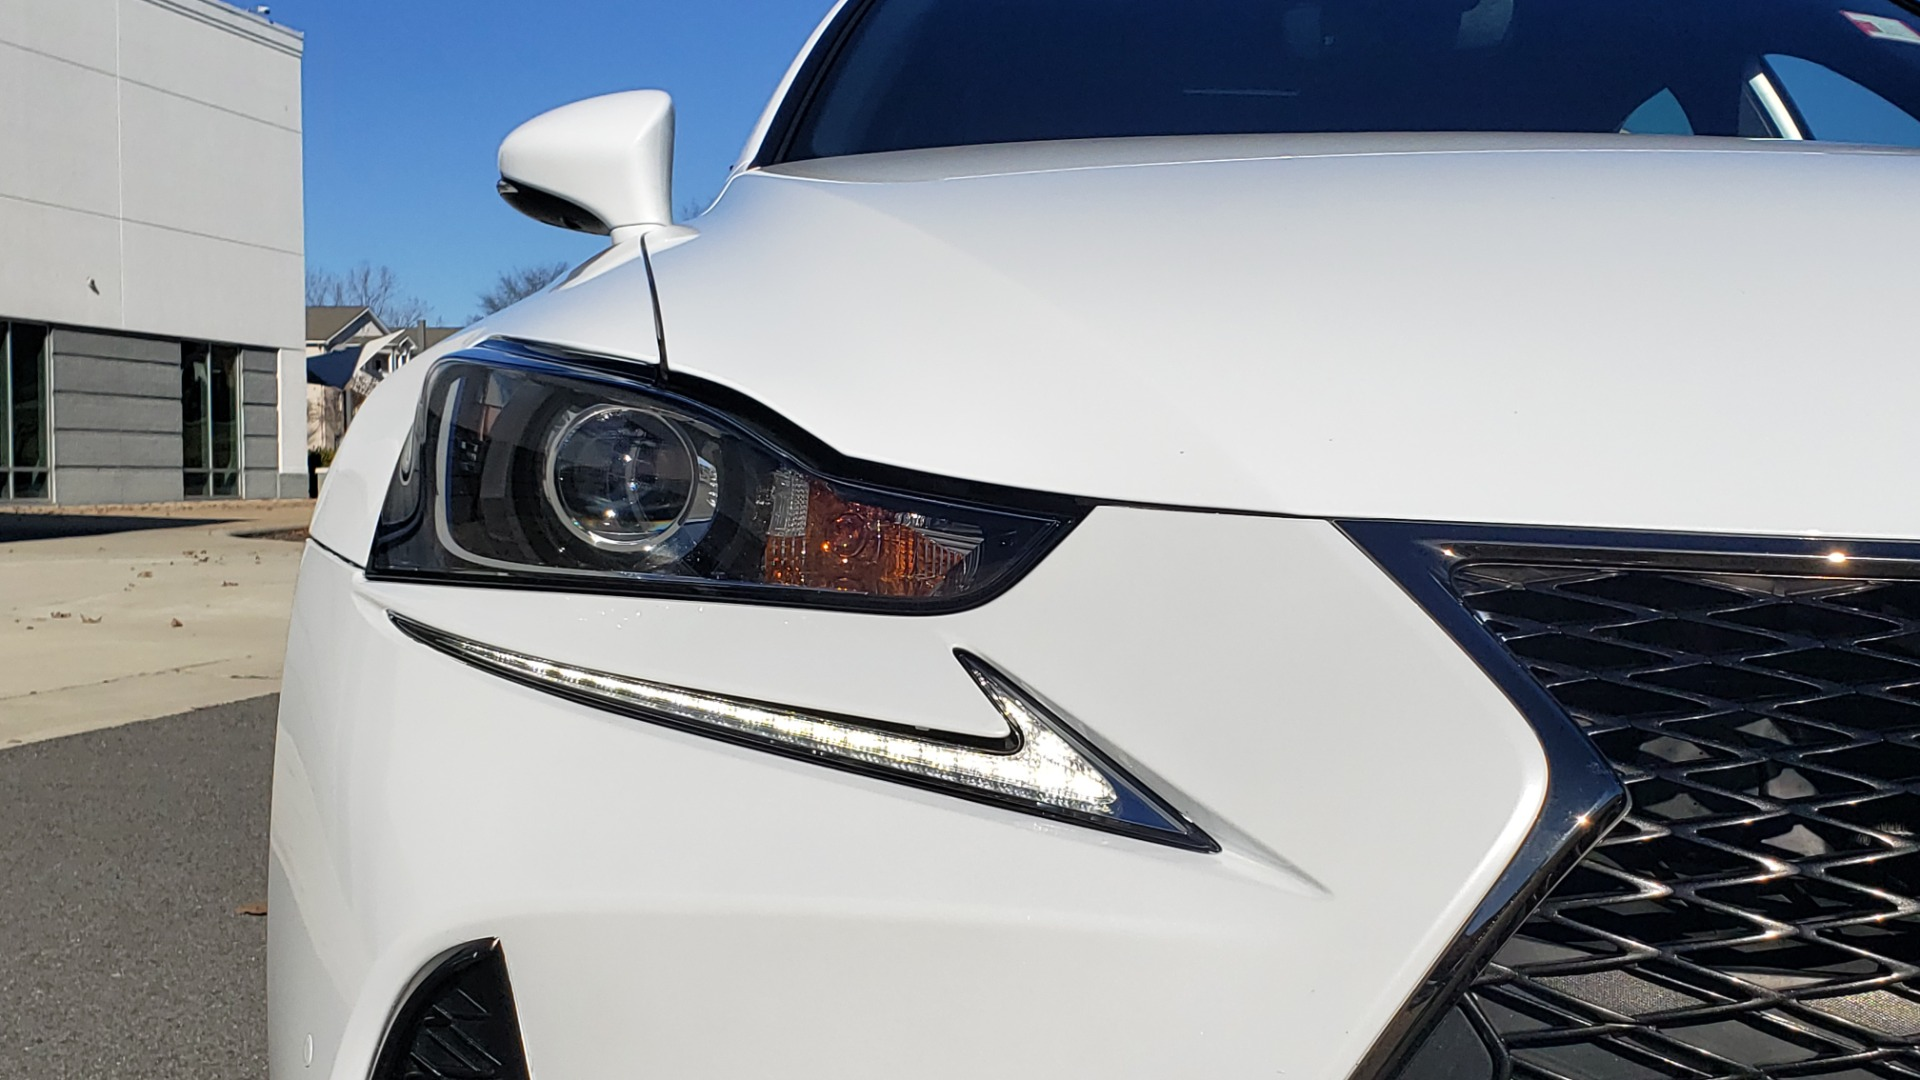 Used 2018 Lexus IS 300 F-SPORT / BSM / SUNROOF / REARVIEW / 18IN WHEELS for sale Sold at Formula Imports in Charlotte NC 28227 24